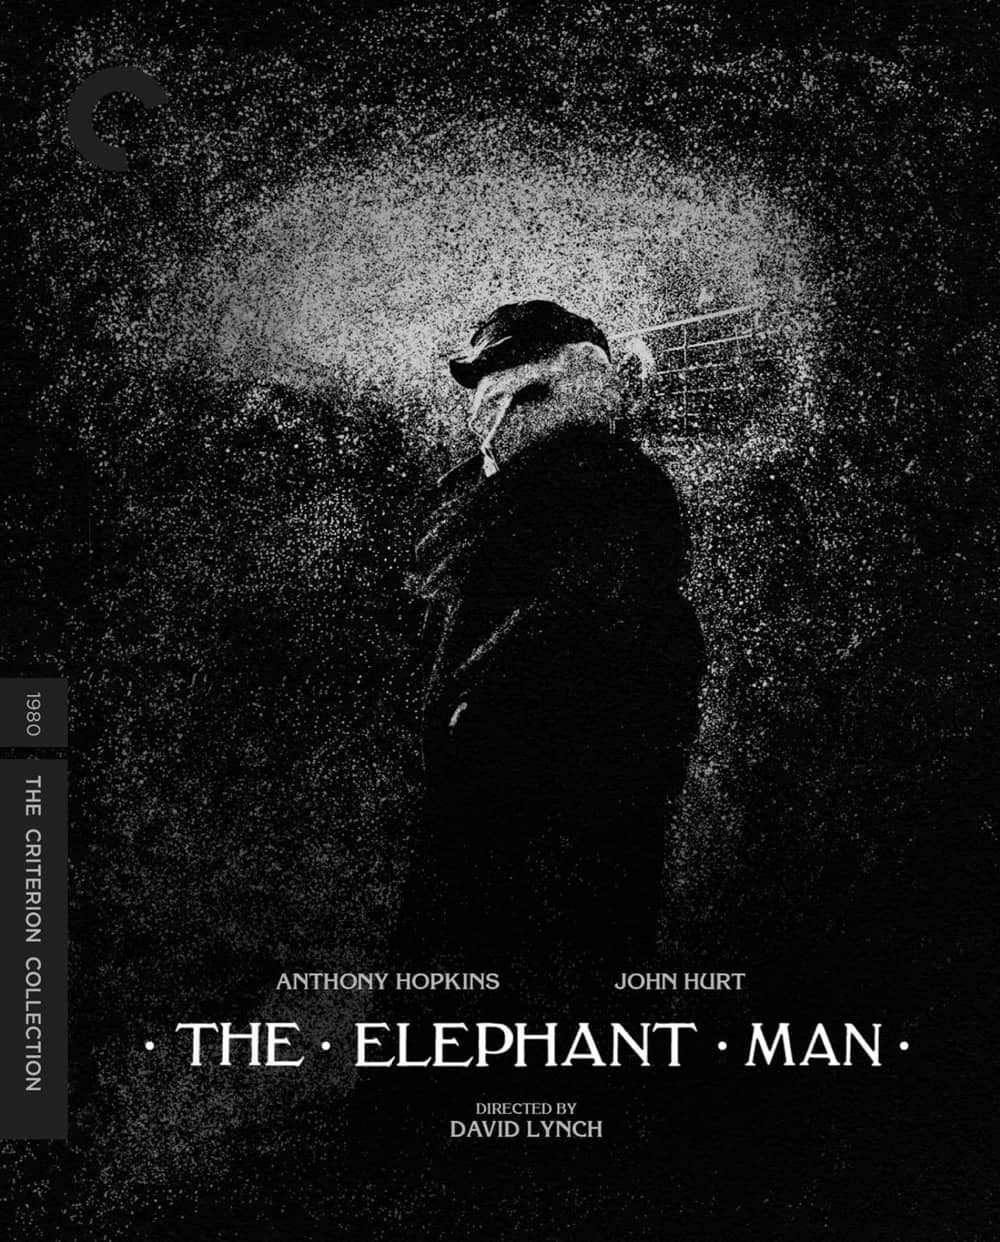 the elephant man criterion collection bluray cover